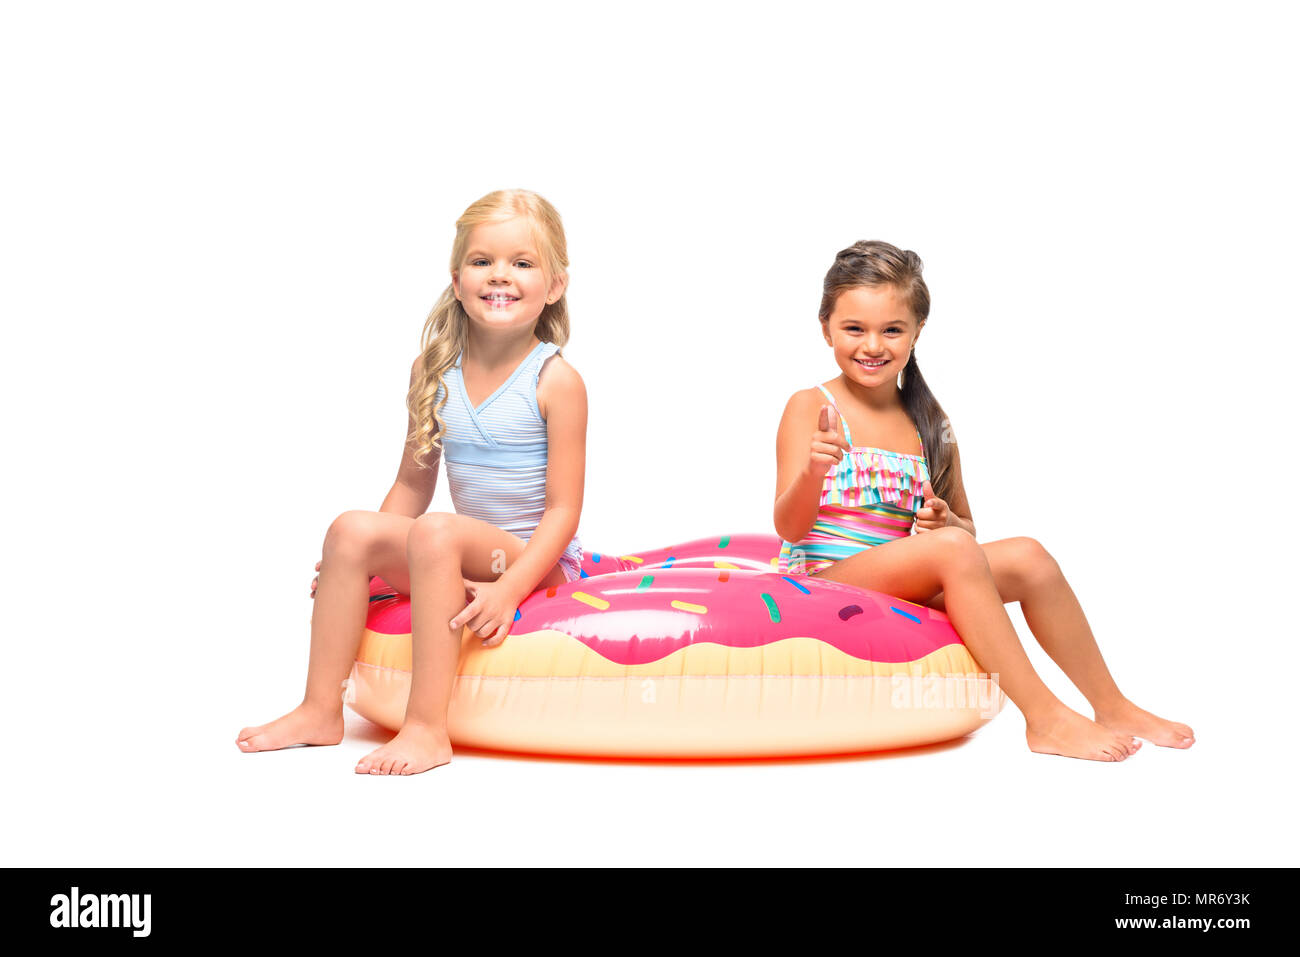 0a88f09788 adorable little girls in swimsuits sitting on swim tube and smiling at  camera isolated on white